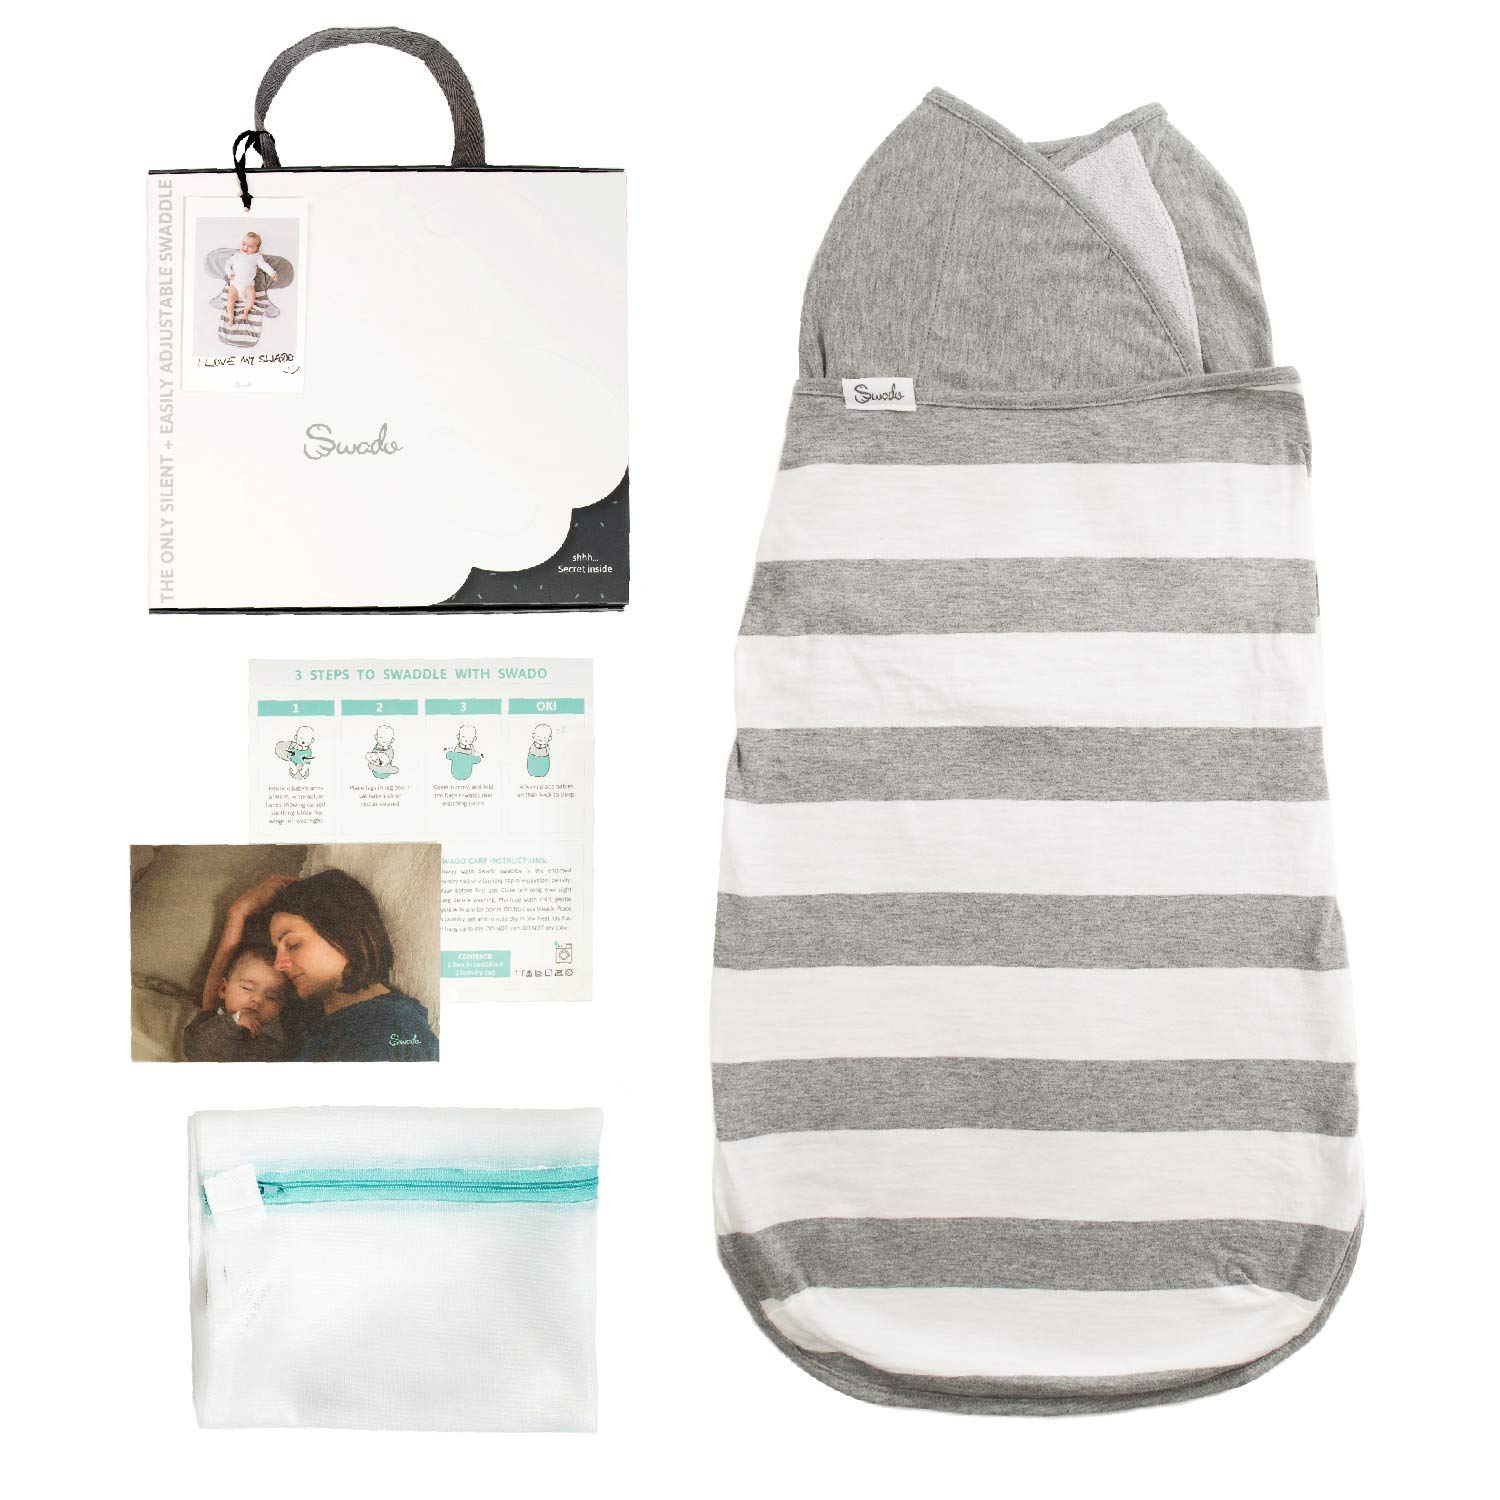 Swado: The Only Silent and Adjustable Easy Swaddle | Stripes | Organic Cotton (Medium)